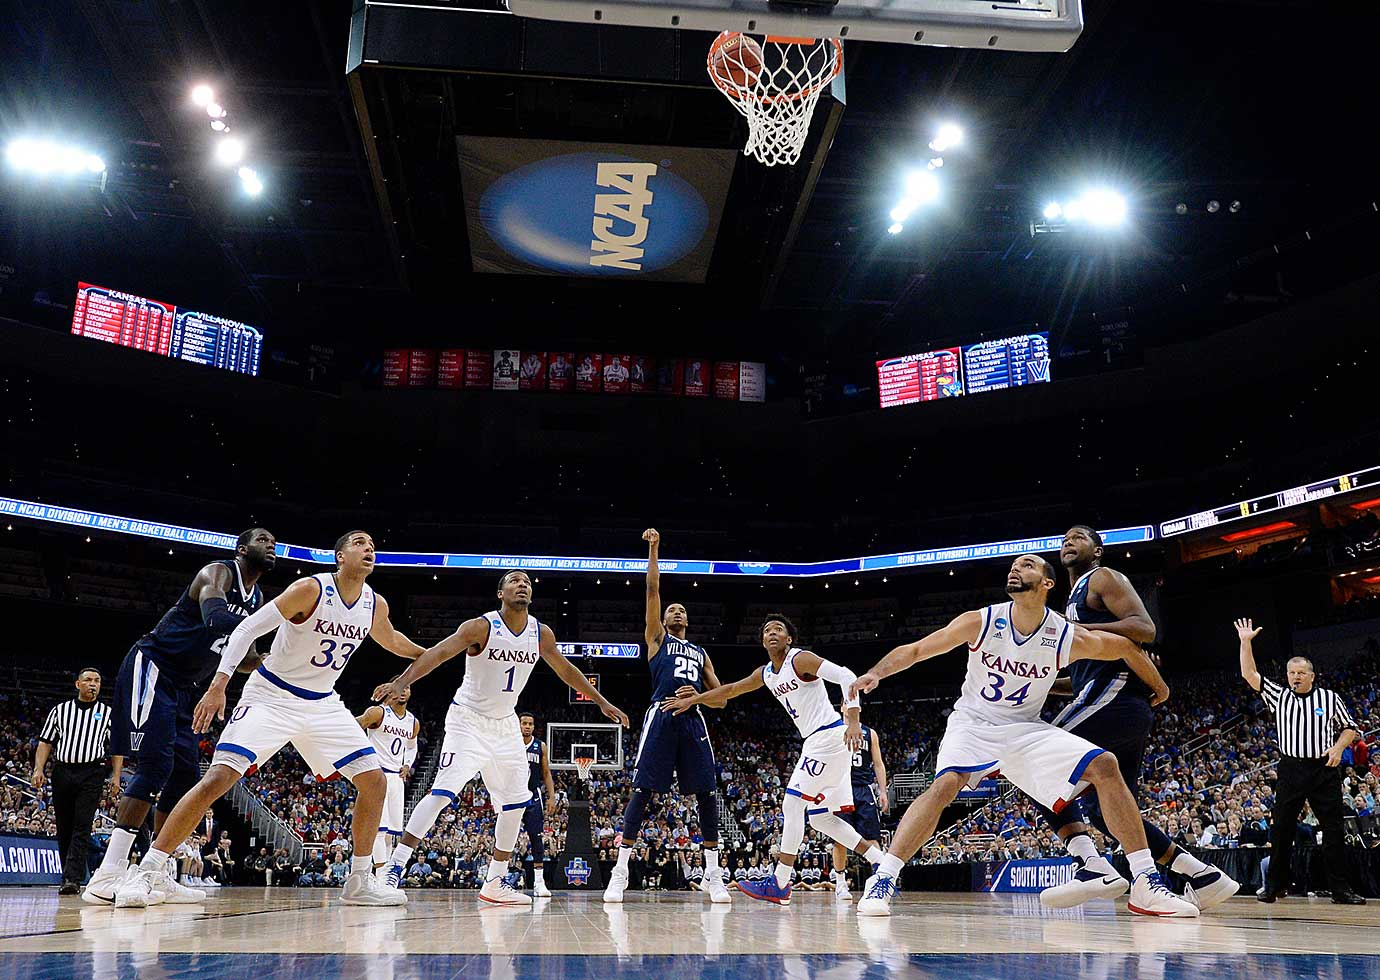 Villanova used a 10-0 run to move ahead 50-45 and hit key throws and played ferocious defense down the stretch.